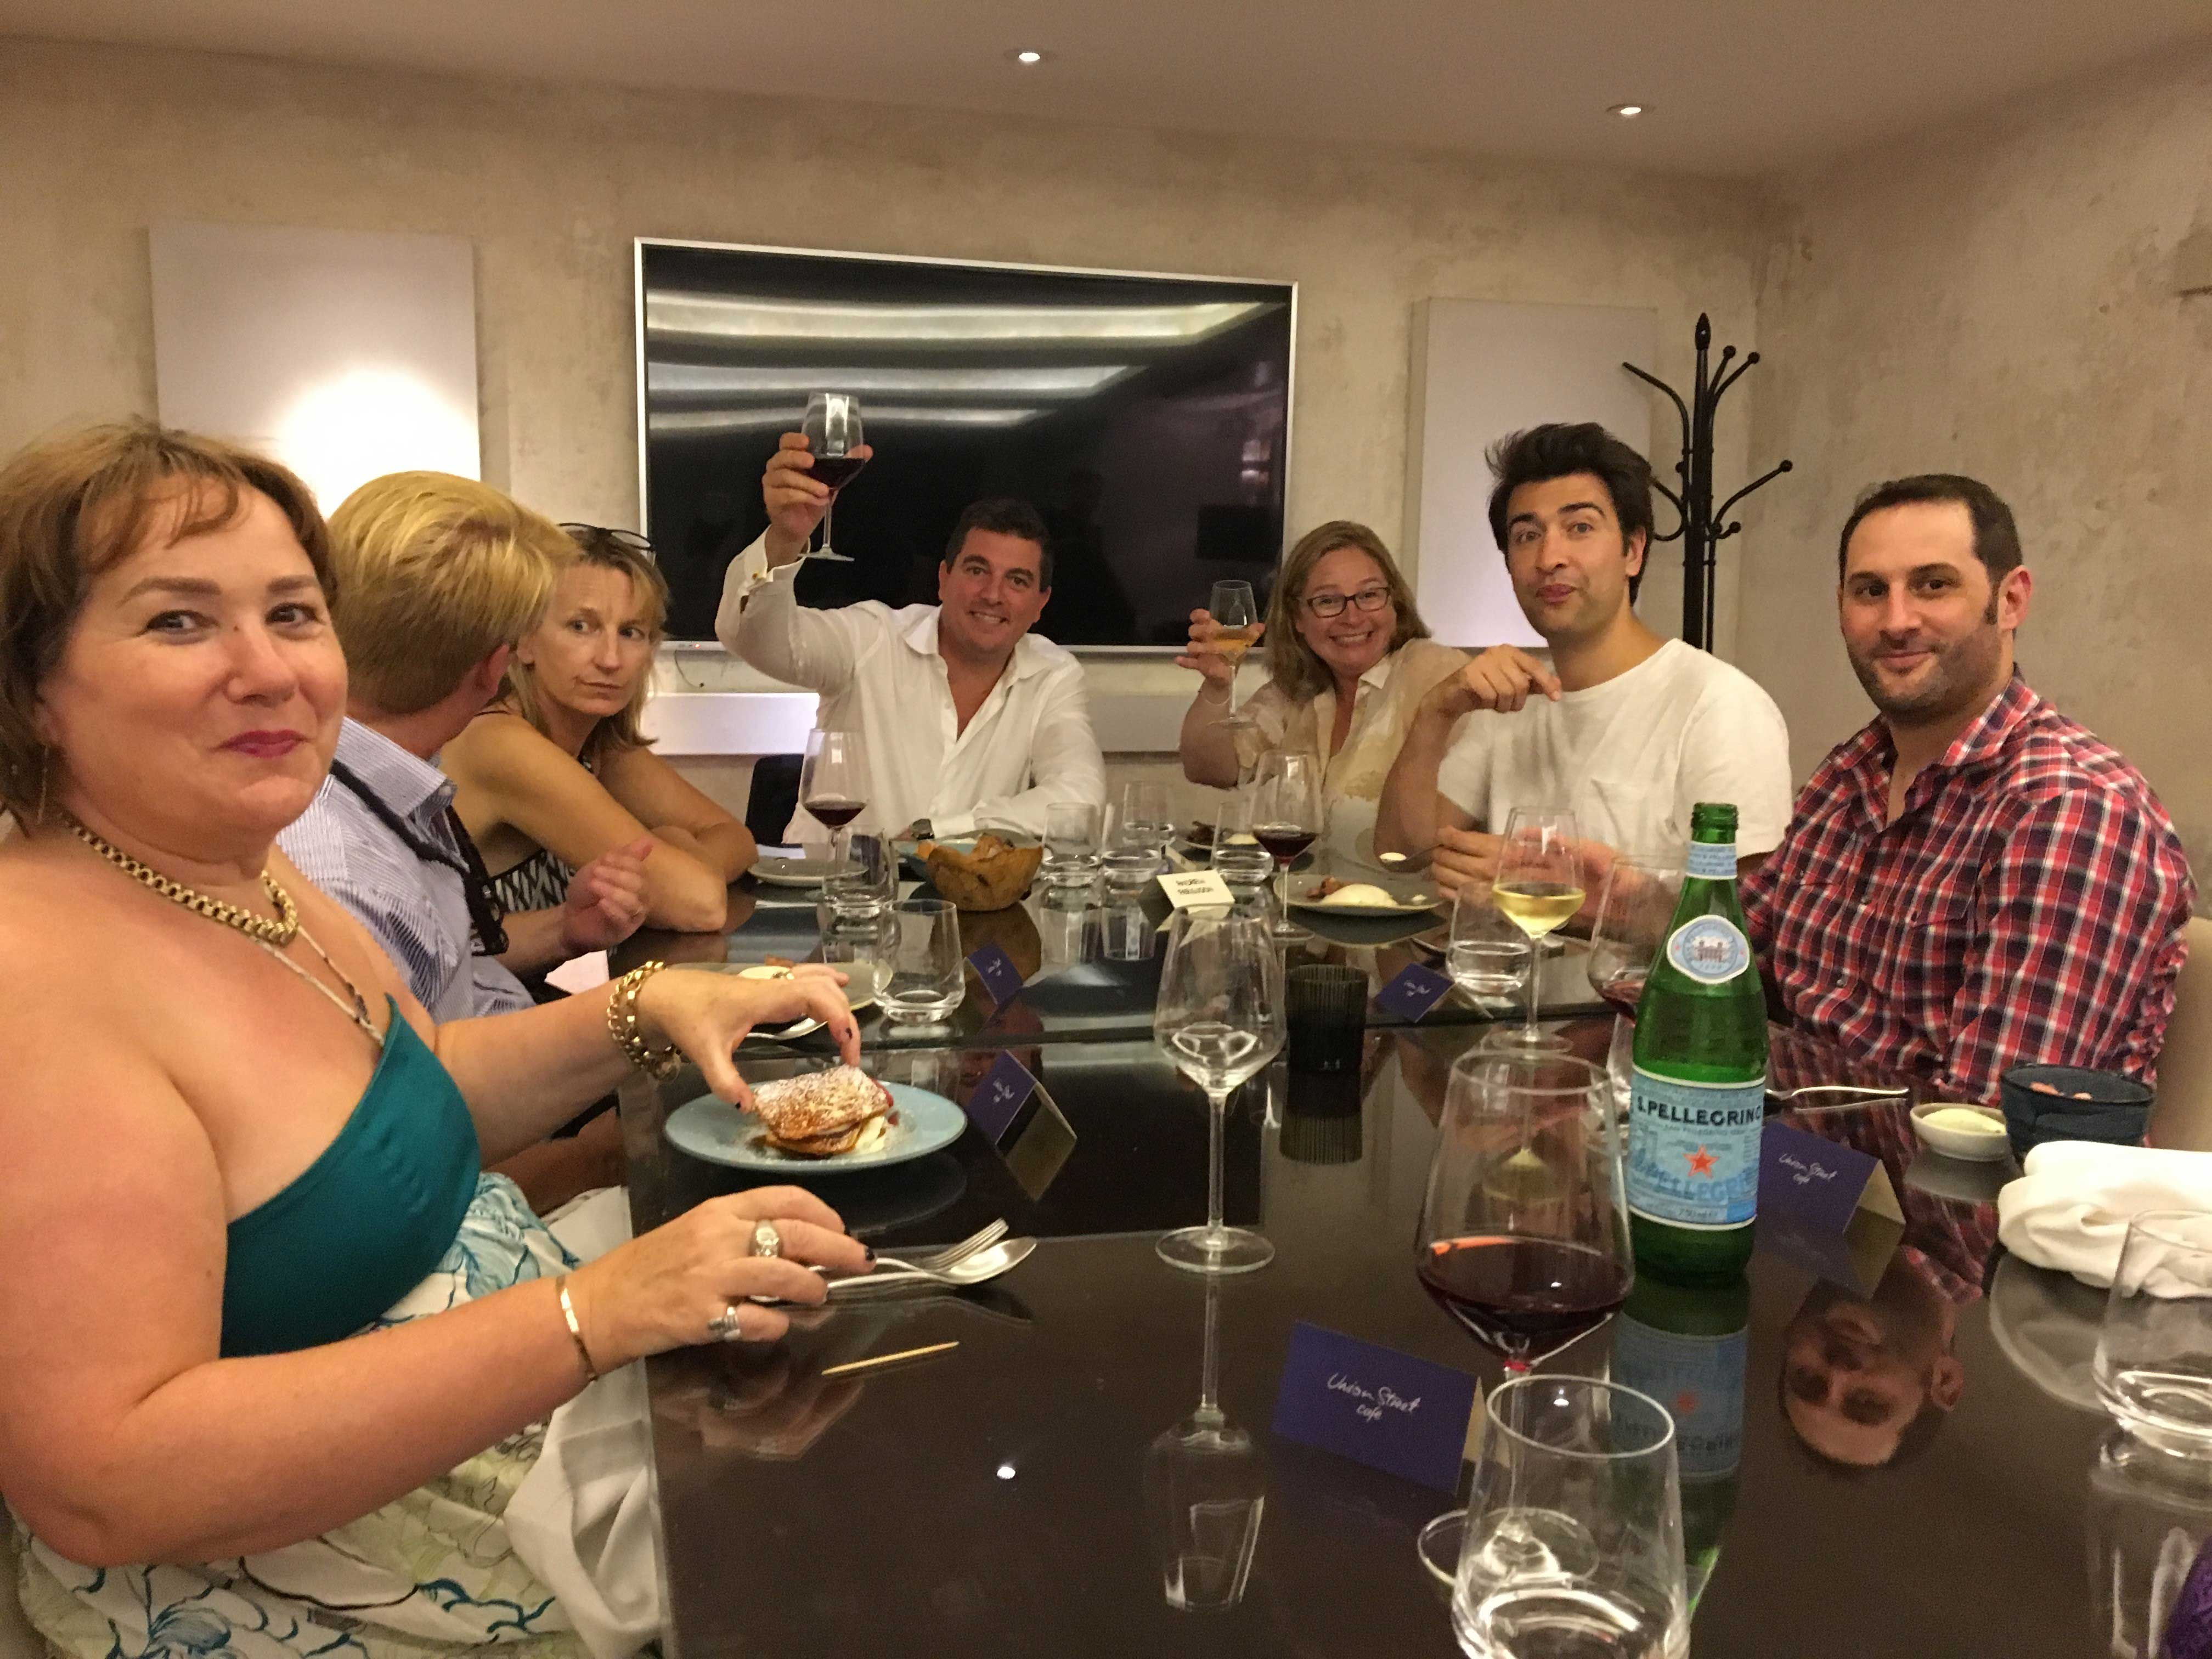 Ketchum London's senior leadership team enjoyed their annual team dinner.